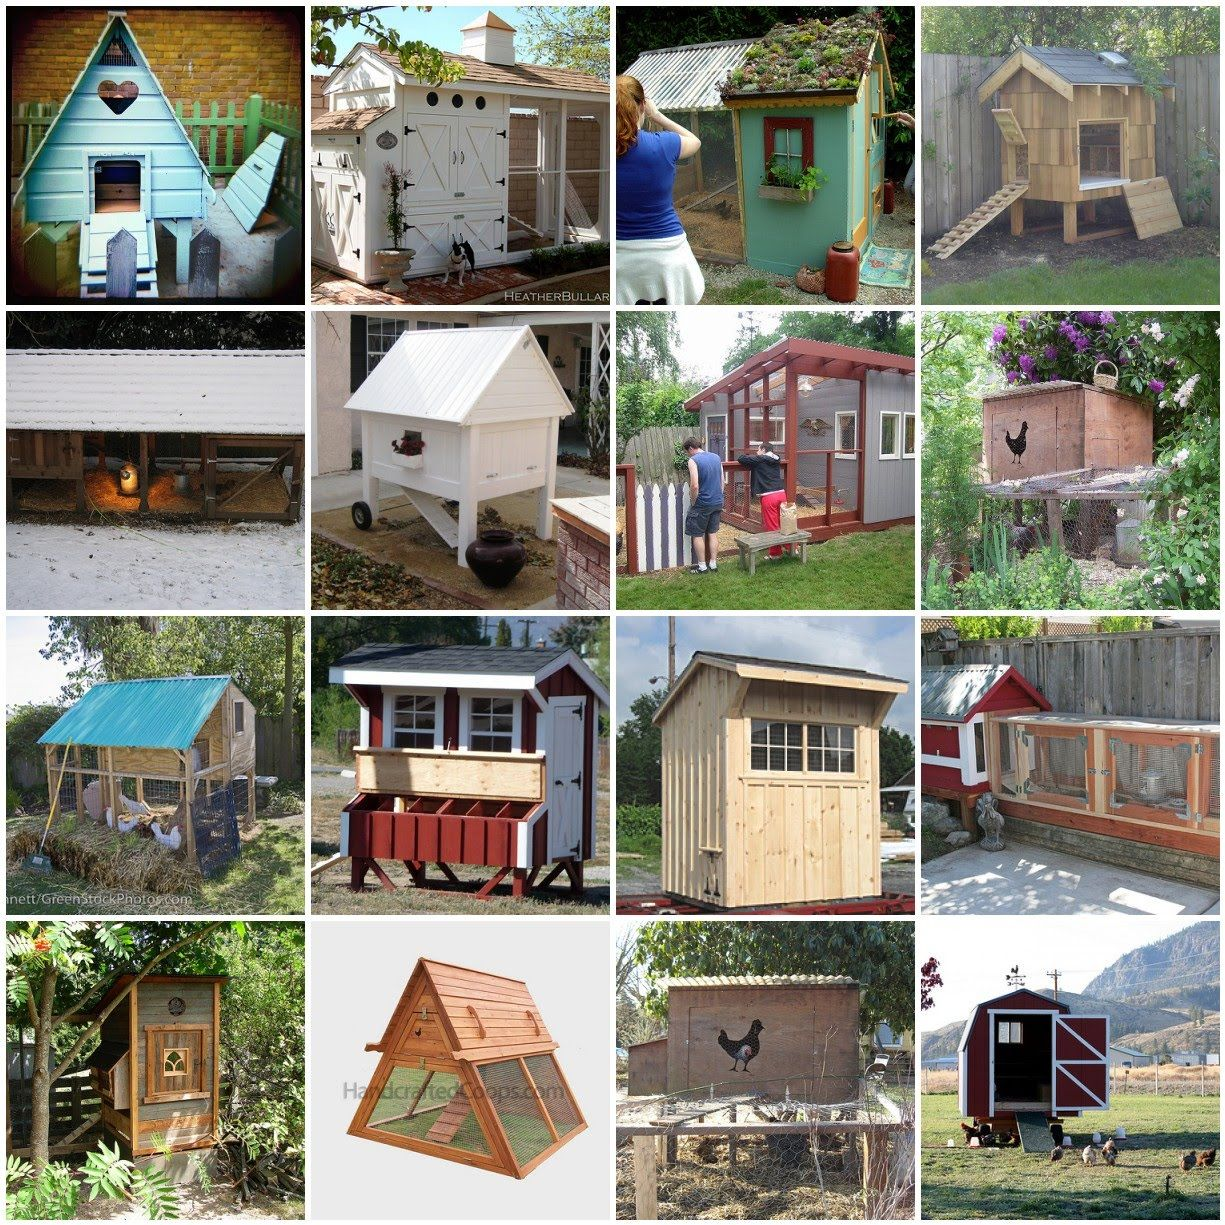 Different Types Of Backyard Chicken Coops The Poultry Guide Chickens Backyard Chicken Coop Plans Chicken Coop Designs Backyard chickens coop designs